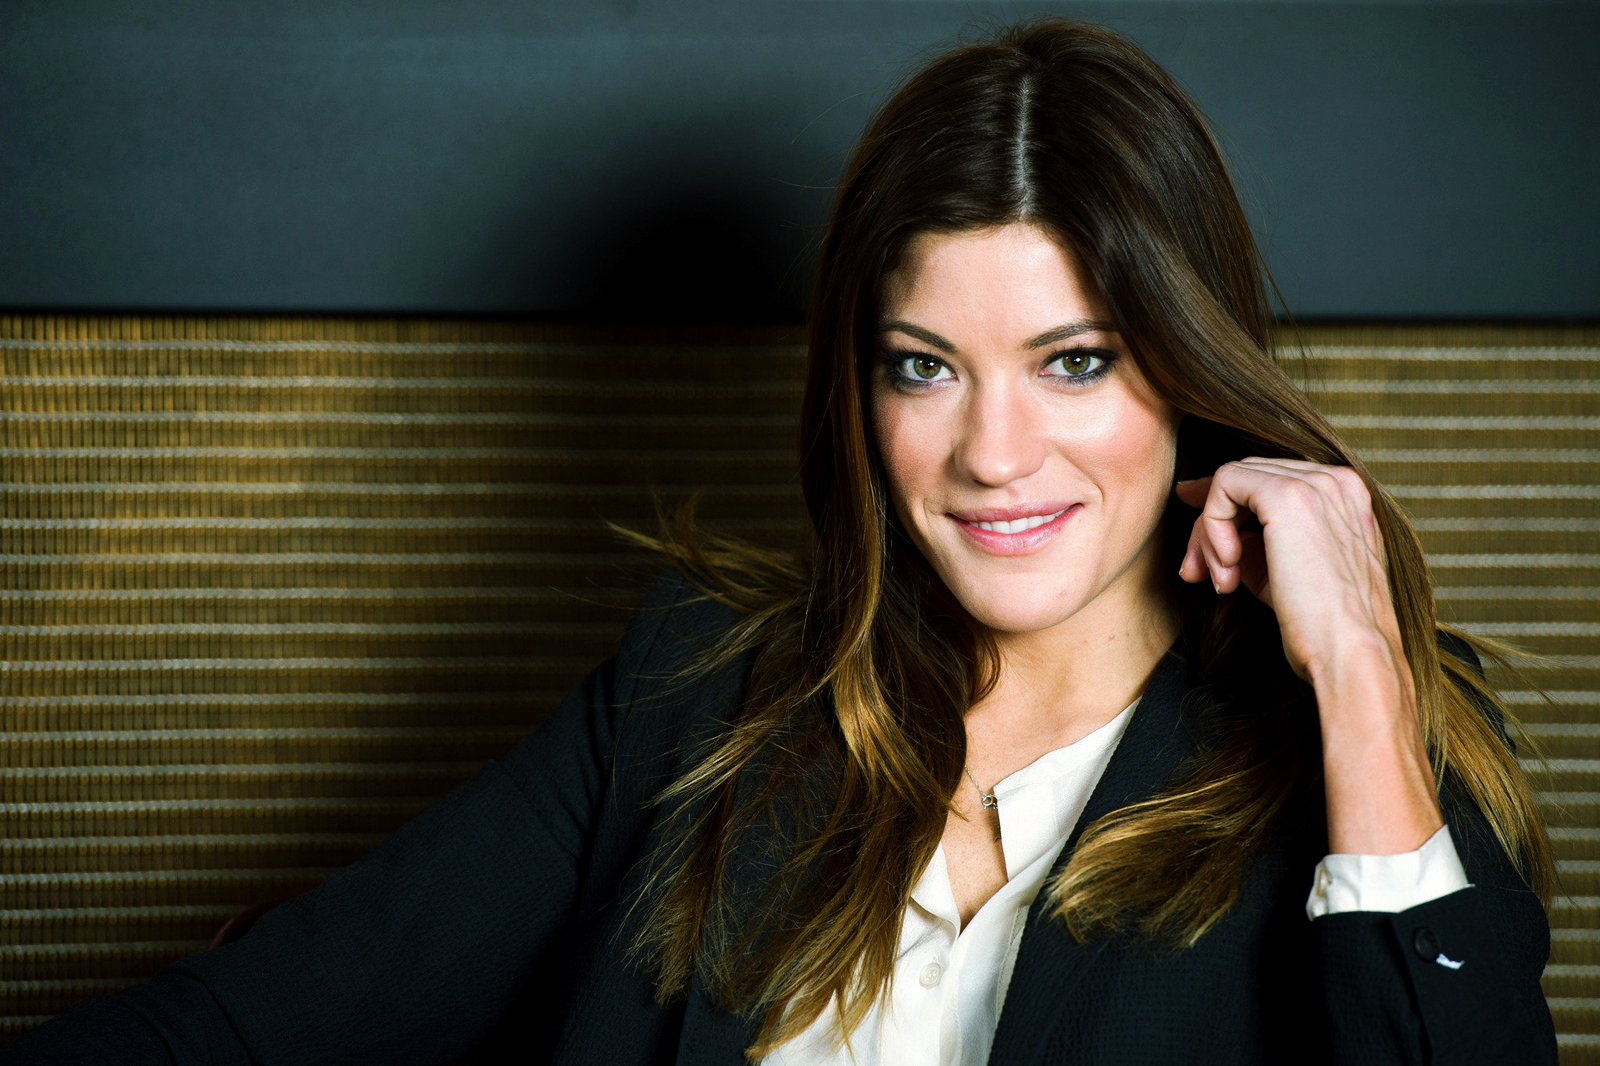 http://4.bp.blogspot.com/-1TGUoPVRfMw/ULXe6KAcozI/AAAAAAAAGXY/51van5WN8jk/s1600/Jennifer-Carpenter-in-Suit-HD-Wallpaper_Vvallpaper.Net.jpg